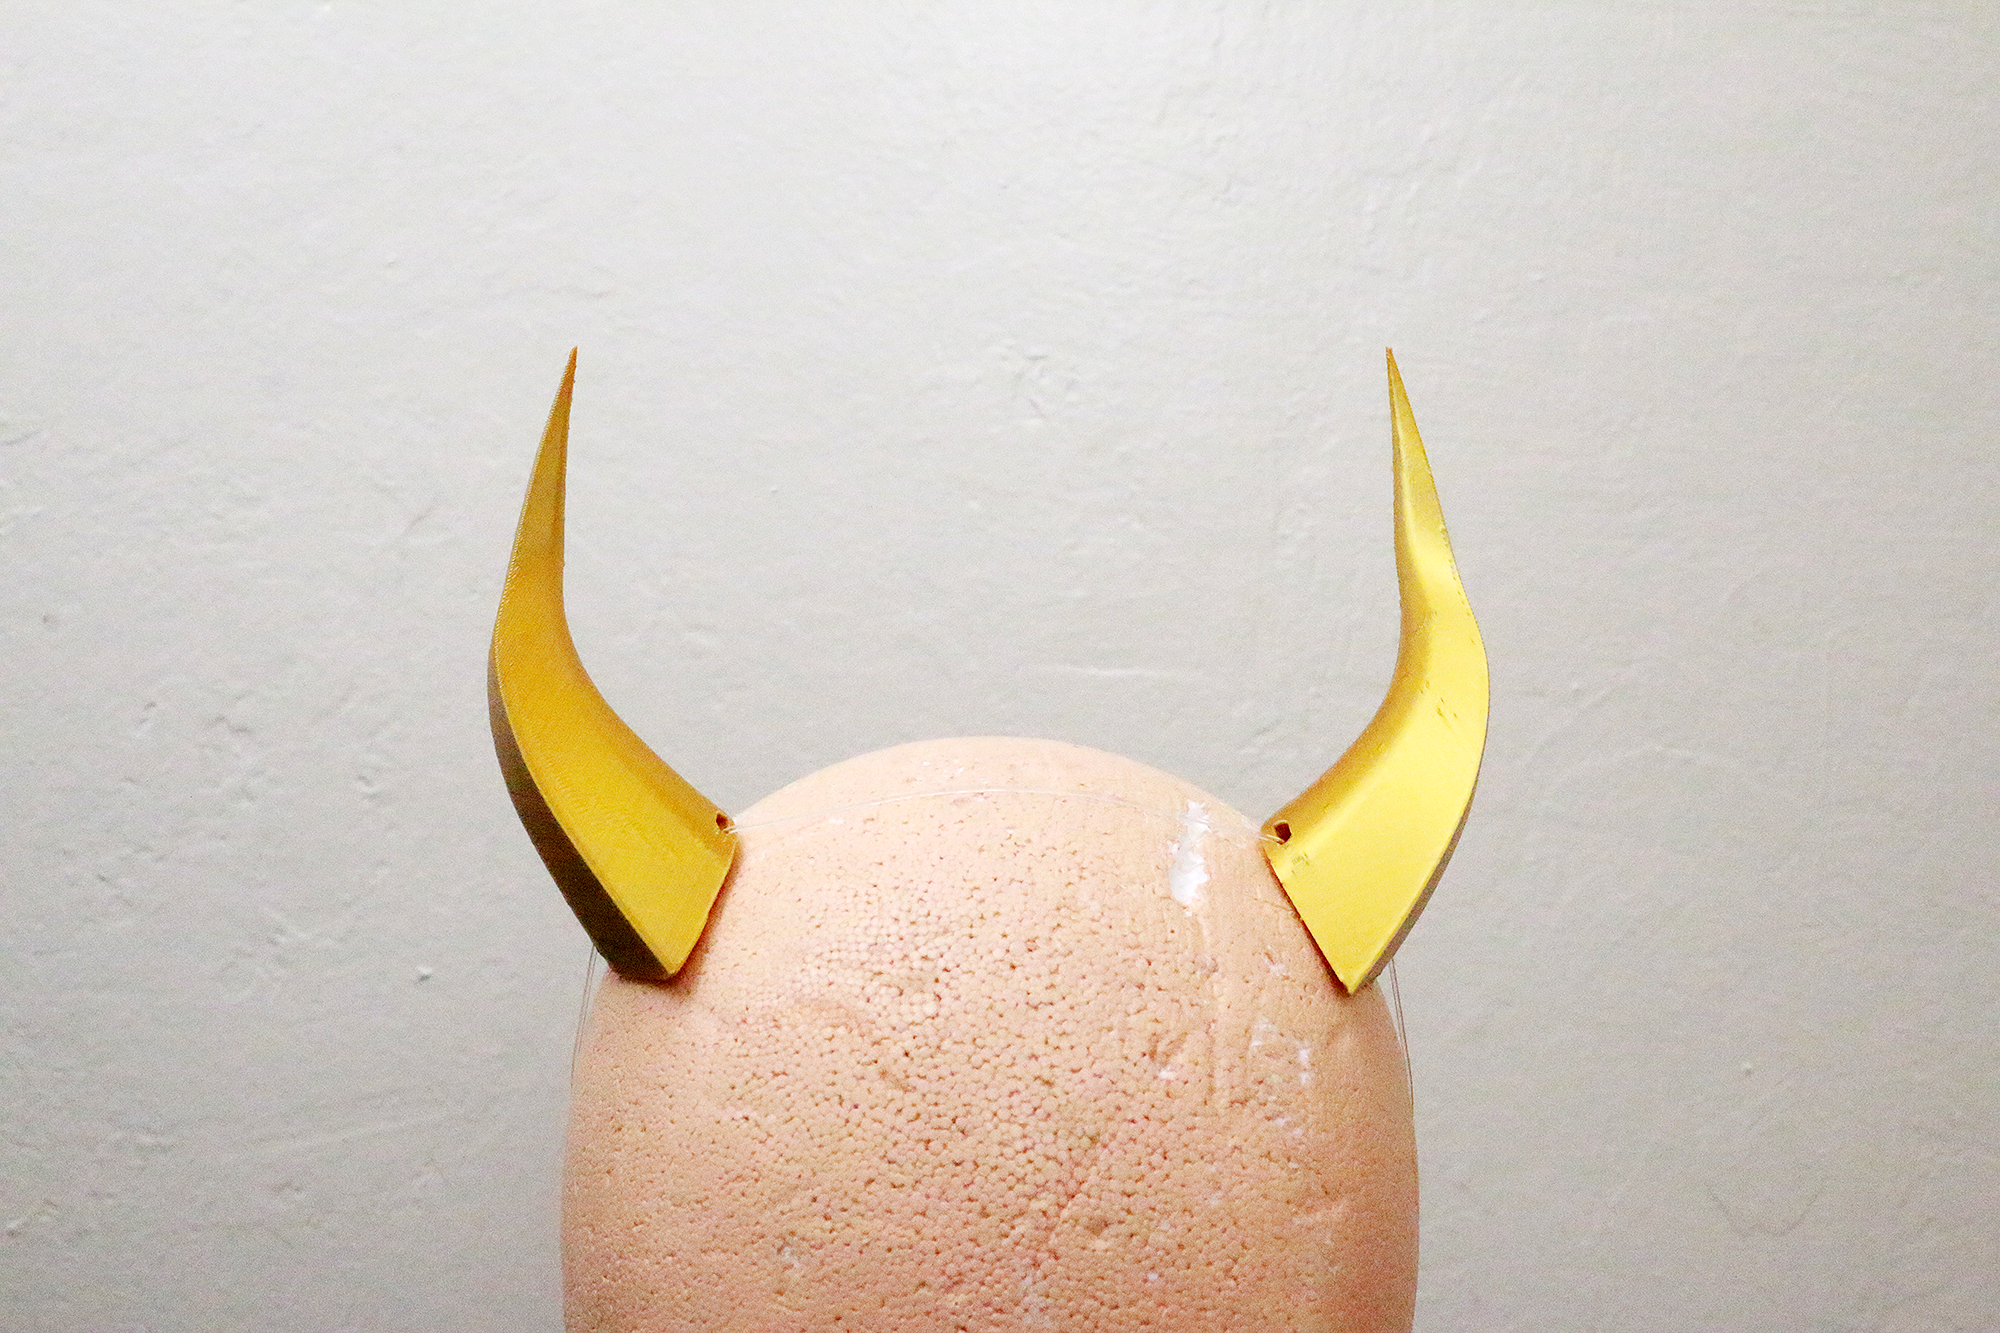 Medium Wyvern 3D Printed Costume Horns